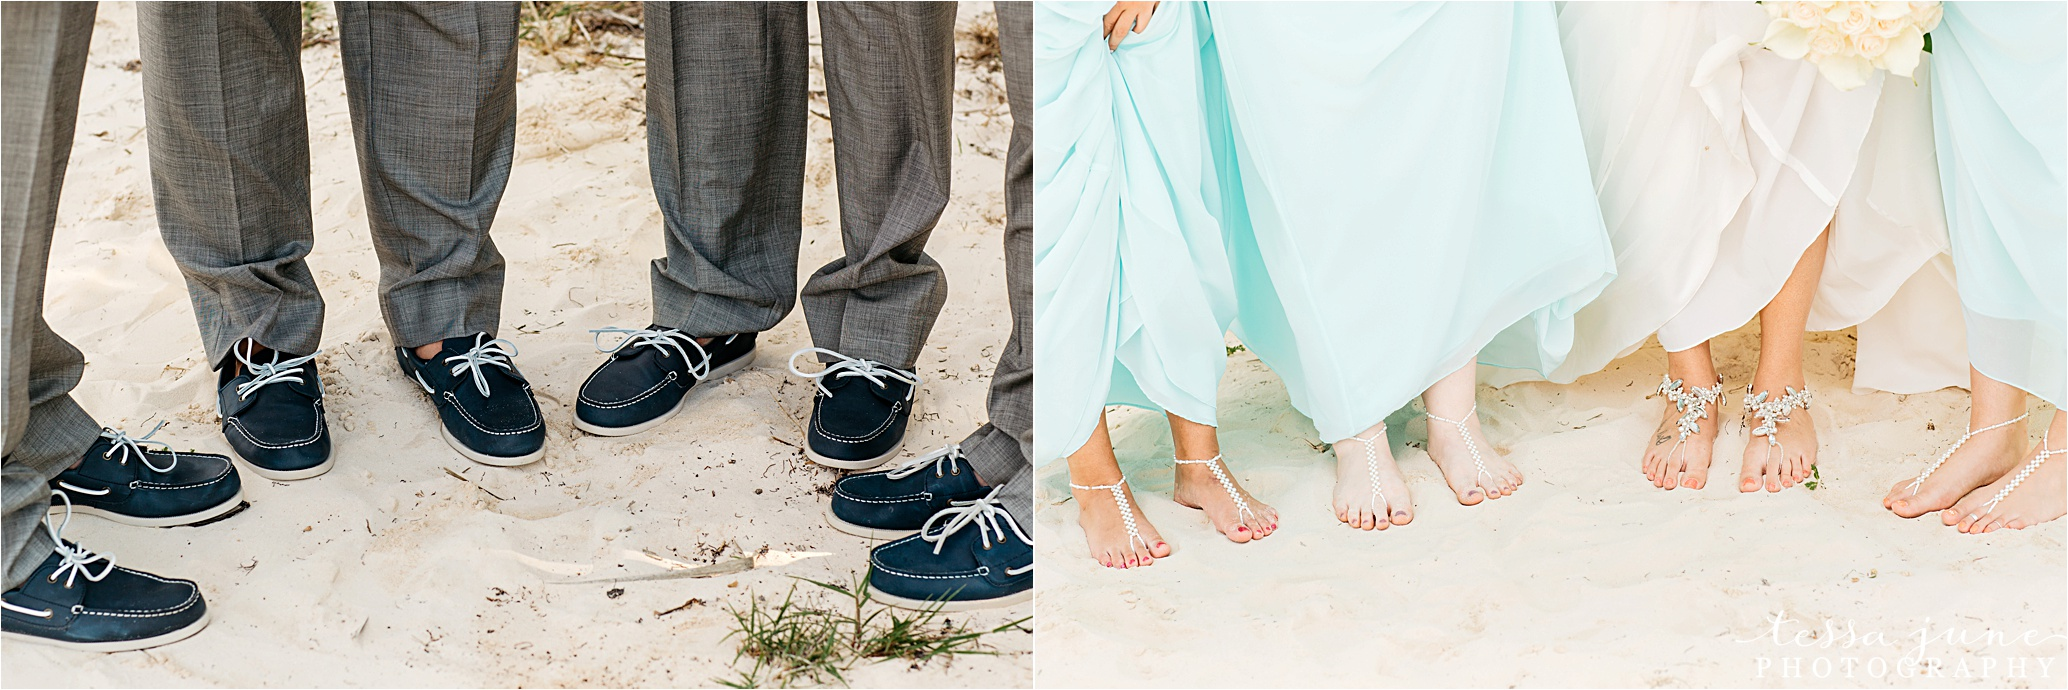 punta-cana-dominican-republic-destination-wedding-shoes